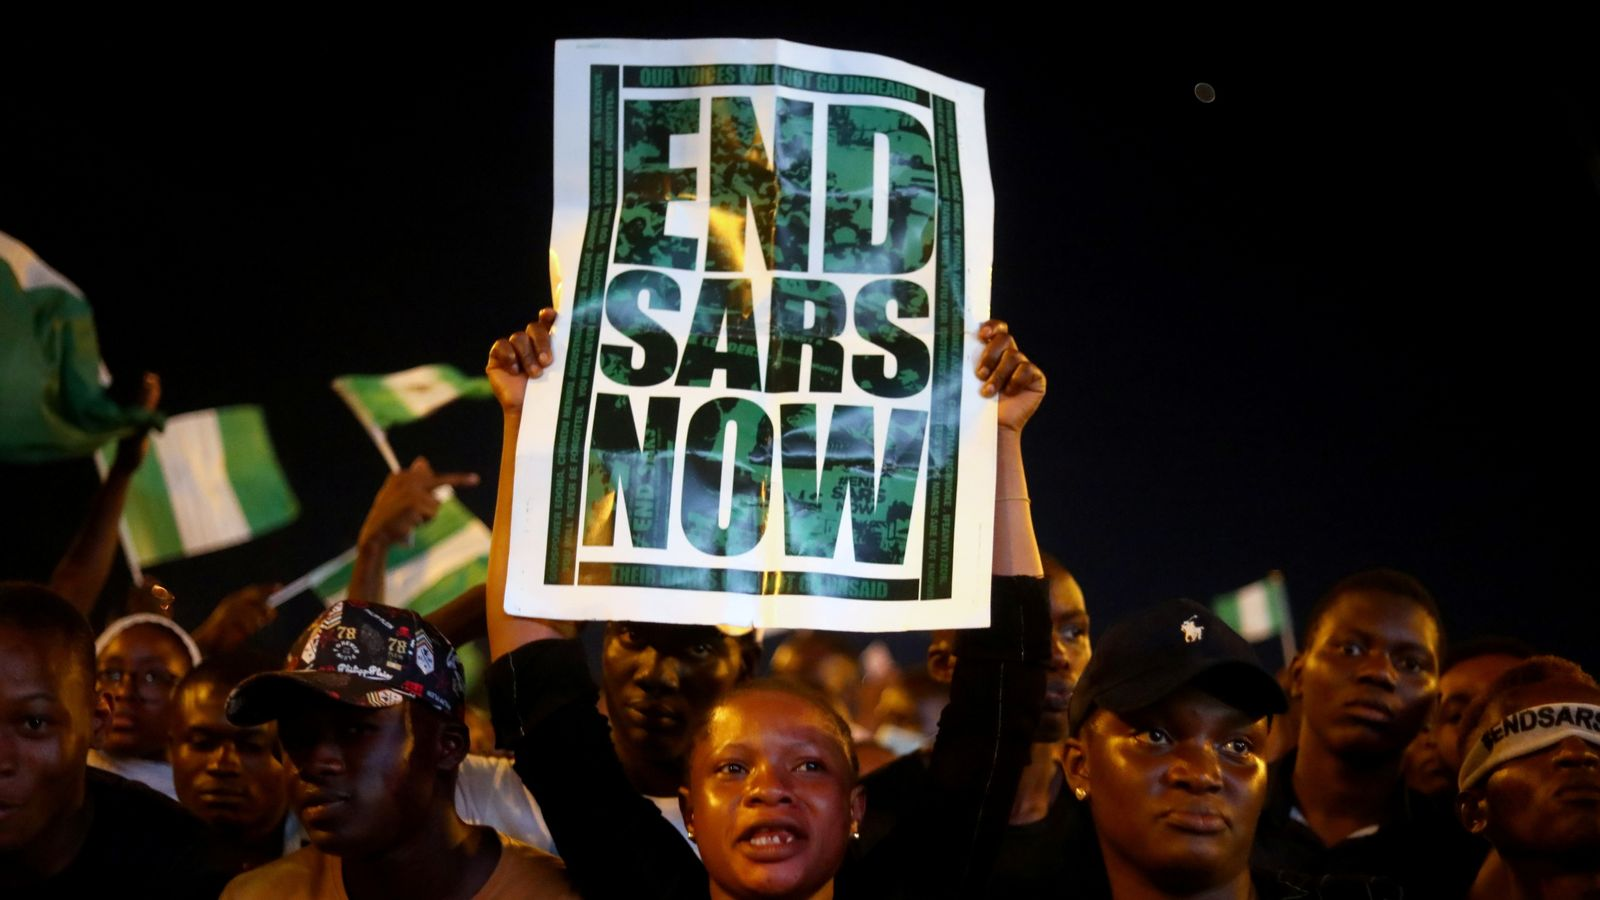 End SARS: Nigerian police 'open fire on protesters' in Lagos after 12 days of anti-police brutality demonstrations